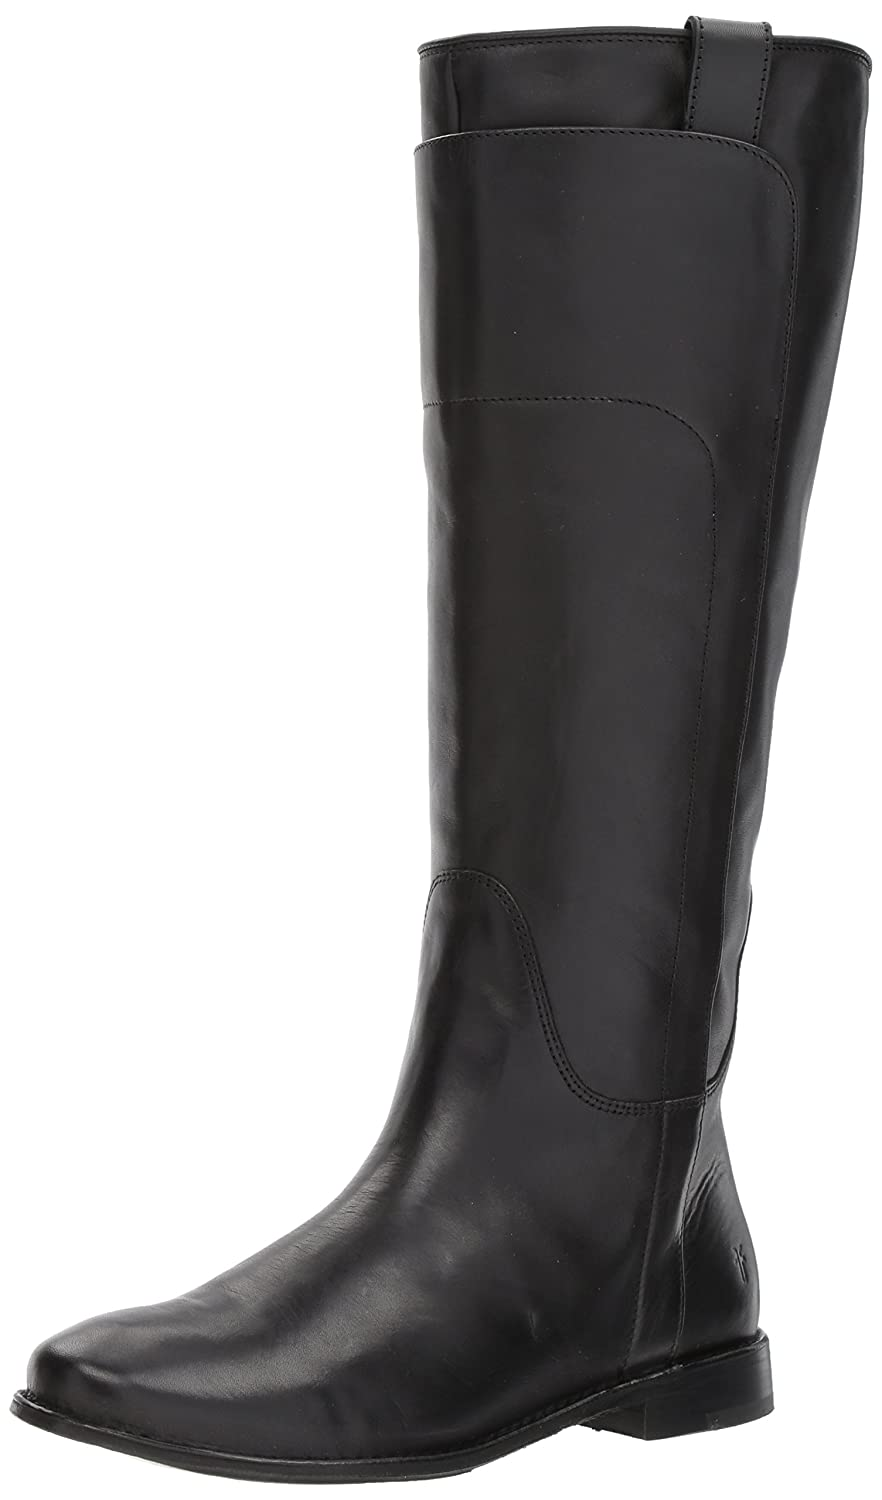 FRYE Women's Paige Tall Riding Boot B06WGLKXGX 11 B(M) US|Black